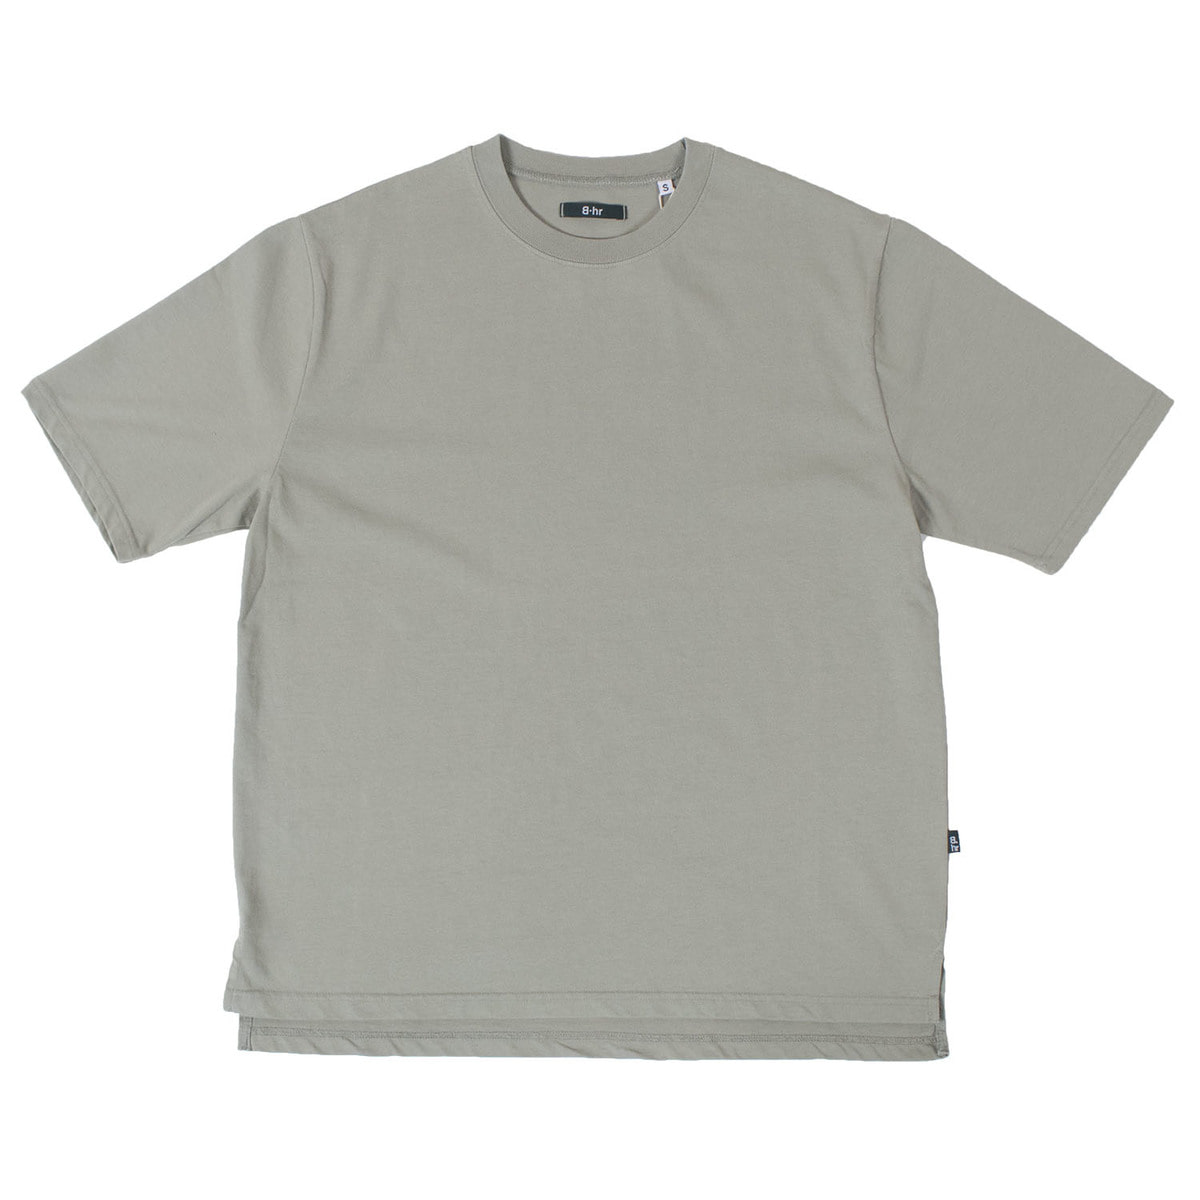 Half Big T-shirts (Khaki)